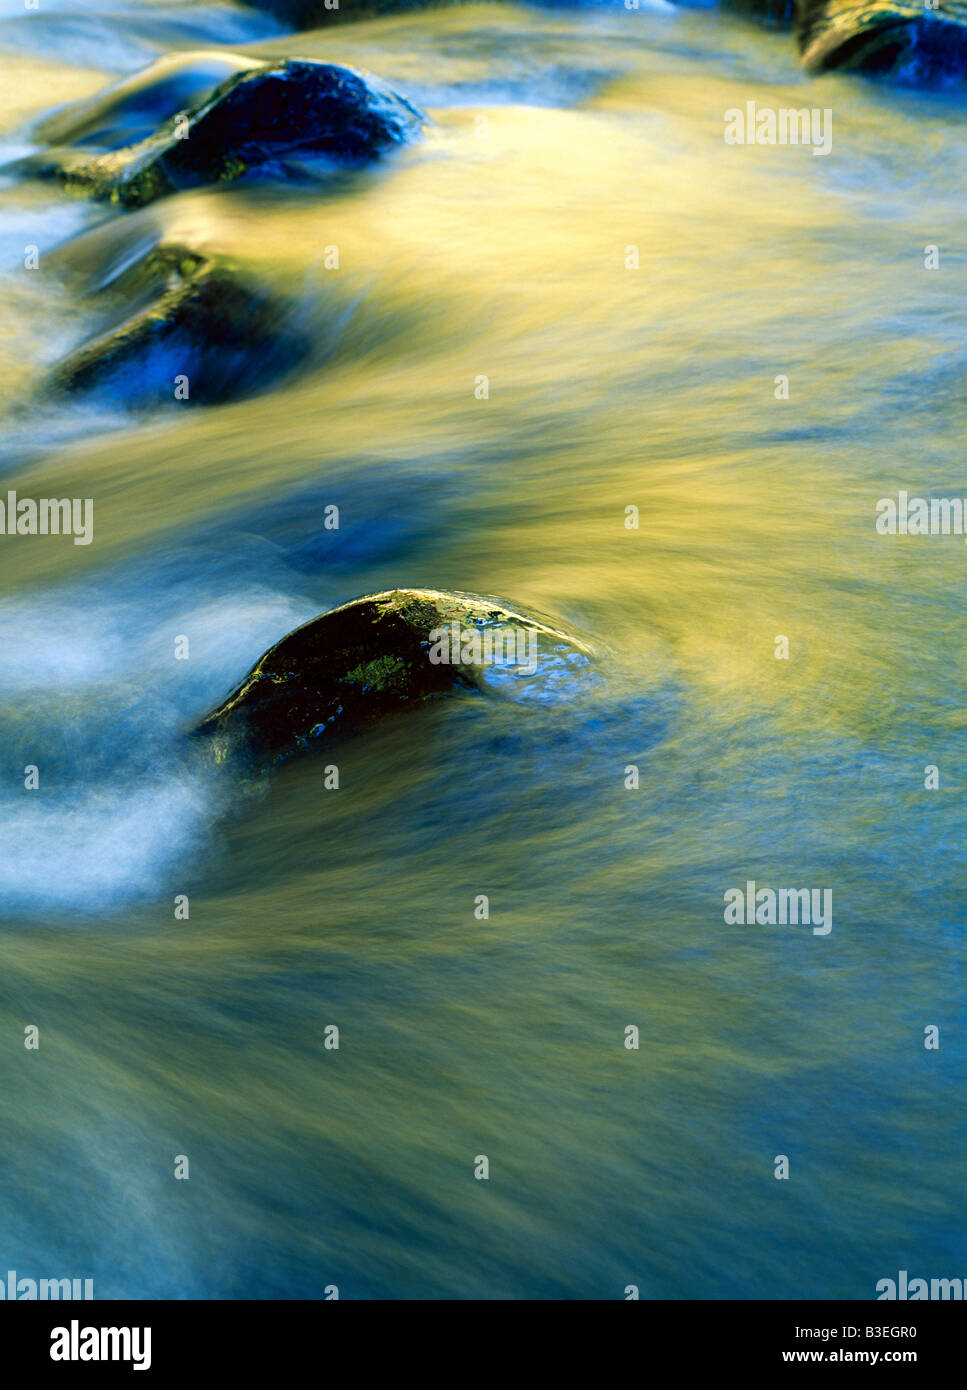 Water flowing - Stock Image